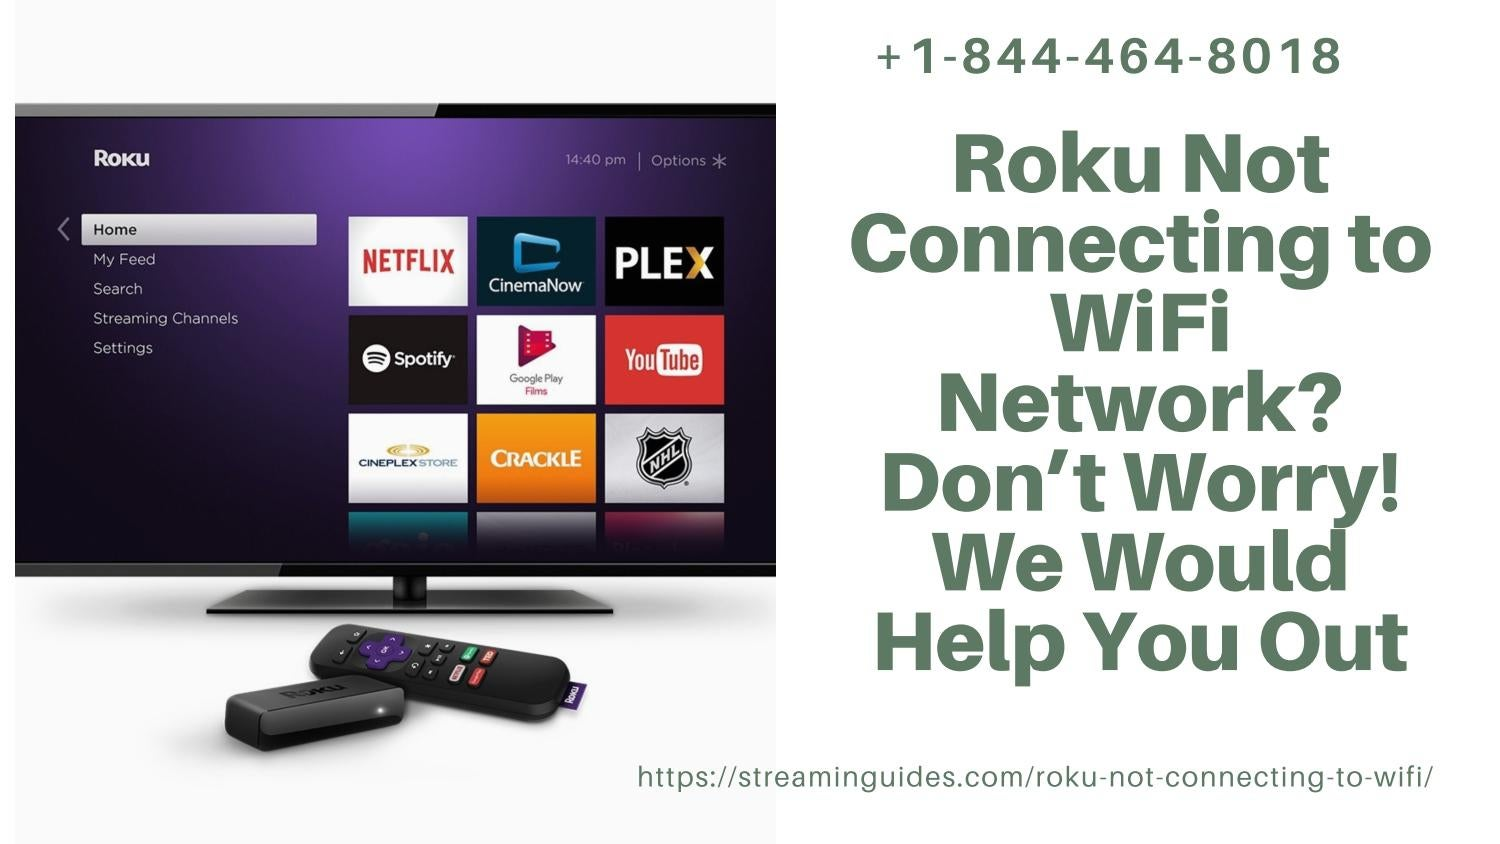 Roku Not Connecting to WiFi | Fix Roku Connectivity Errors –Give Us a Call for Quick Solution